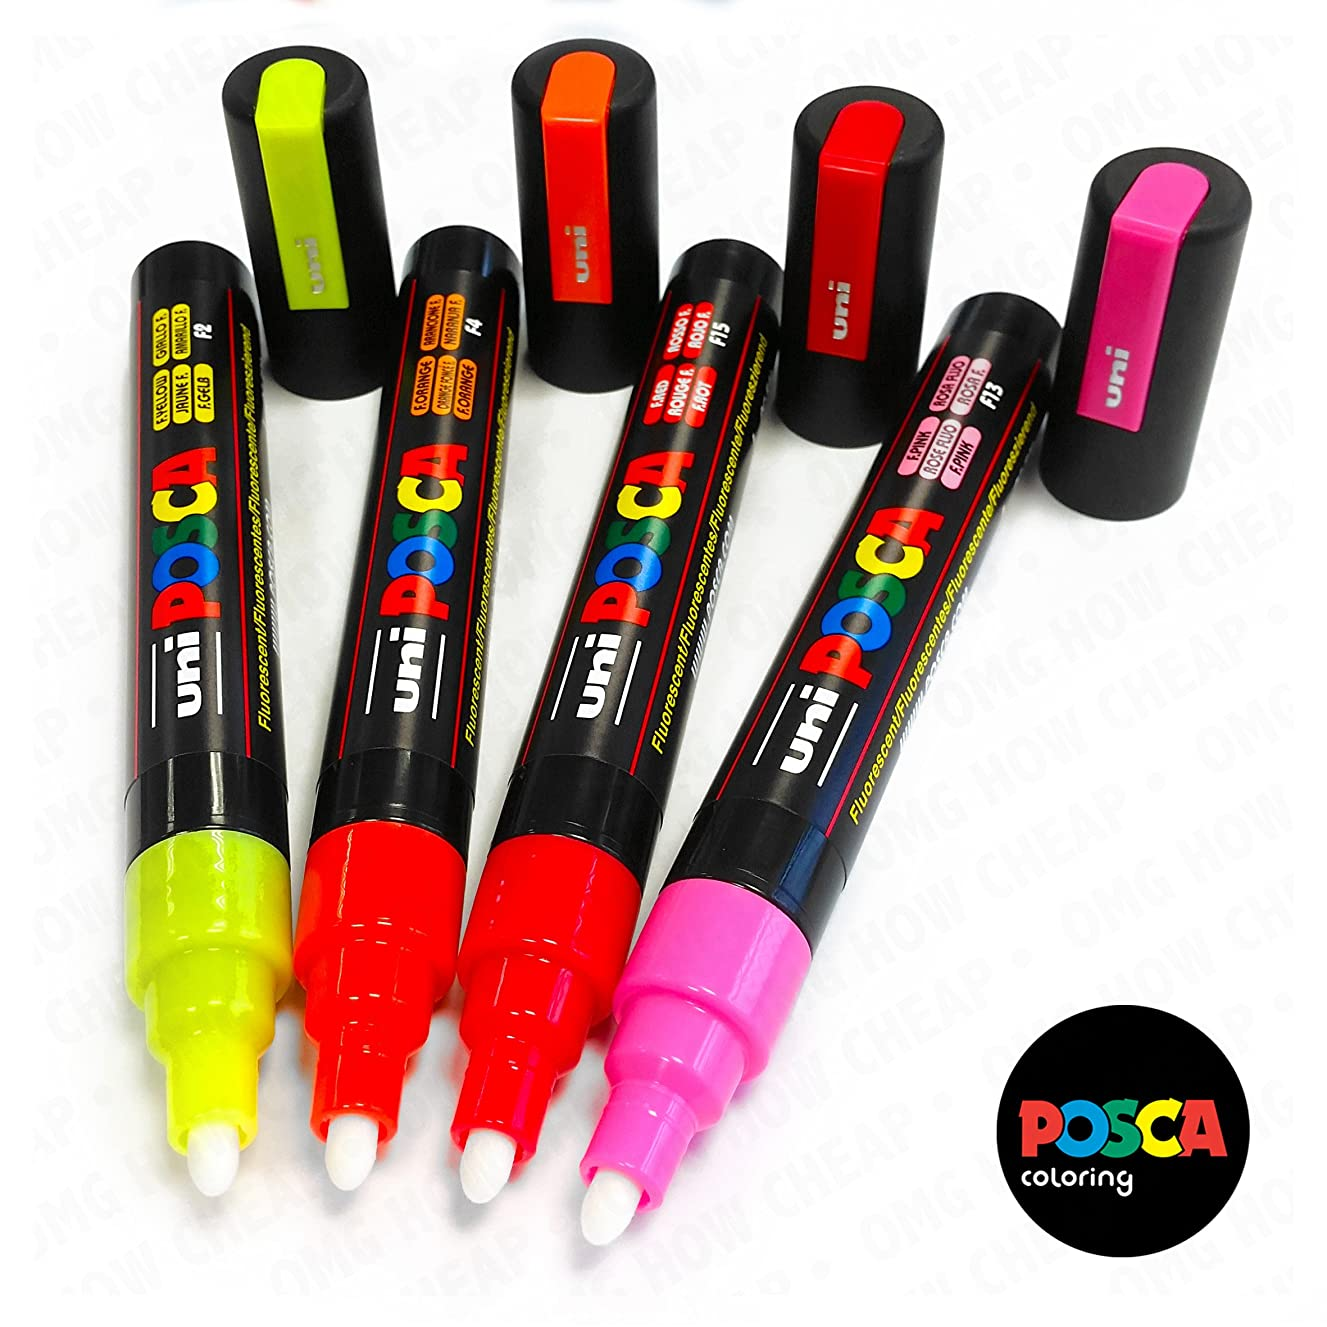 POSCA Colouring - PC-5M Fluorescent Paint Marker - Set of 4 - In Wallet